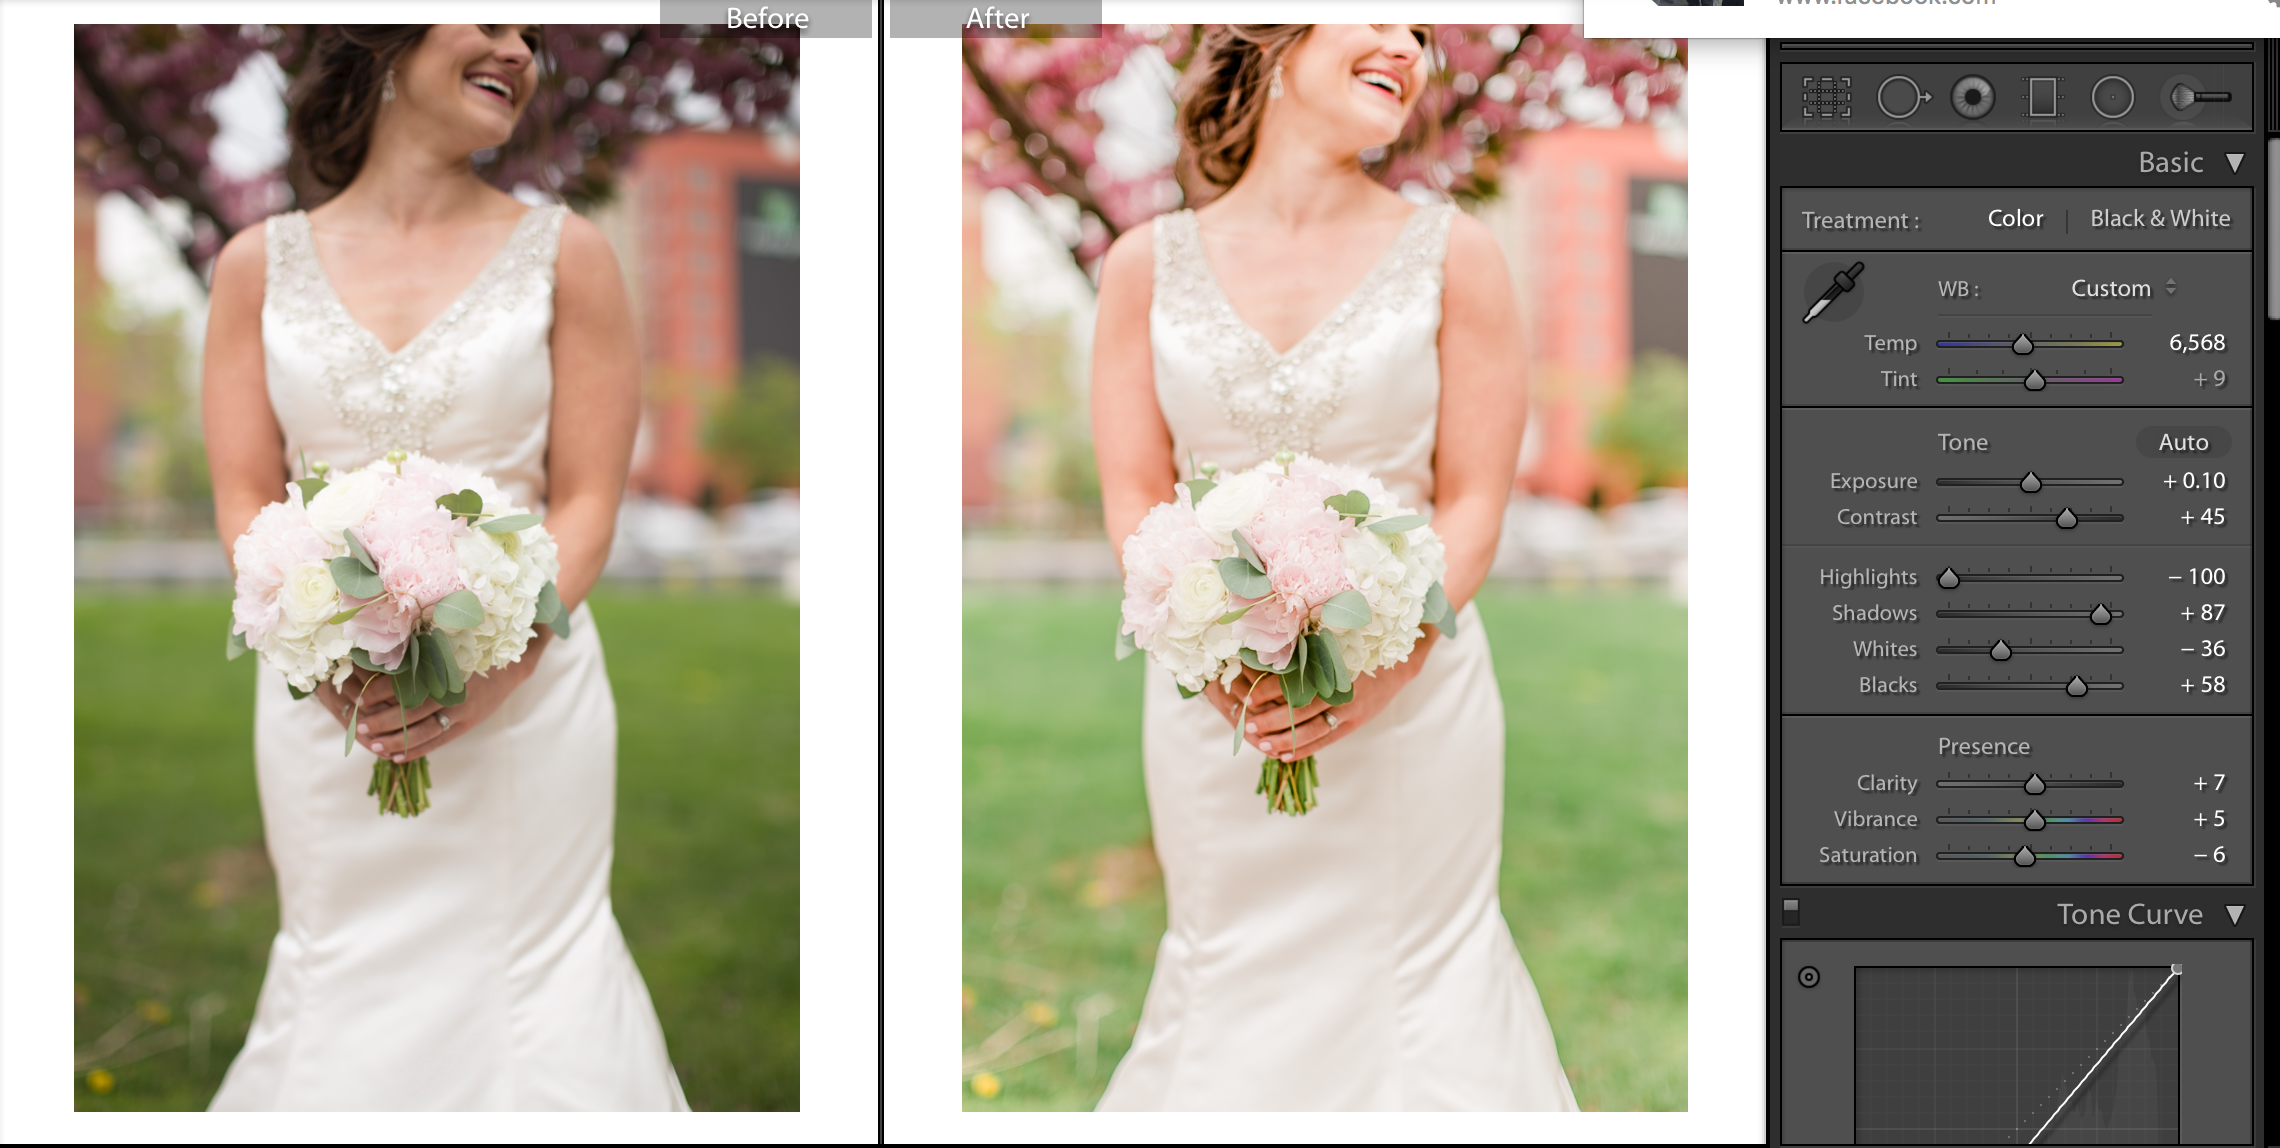 light and airy before and after wedding portrait